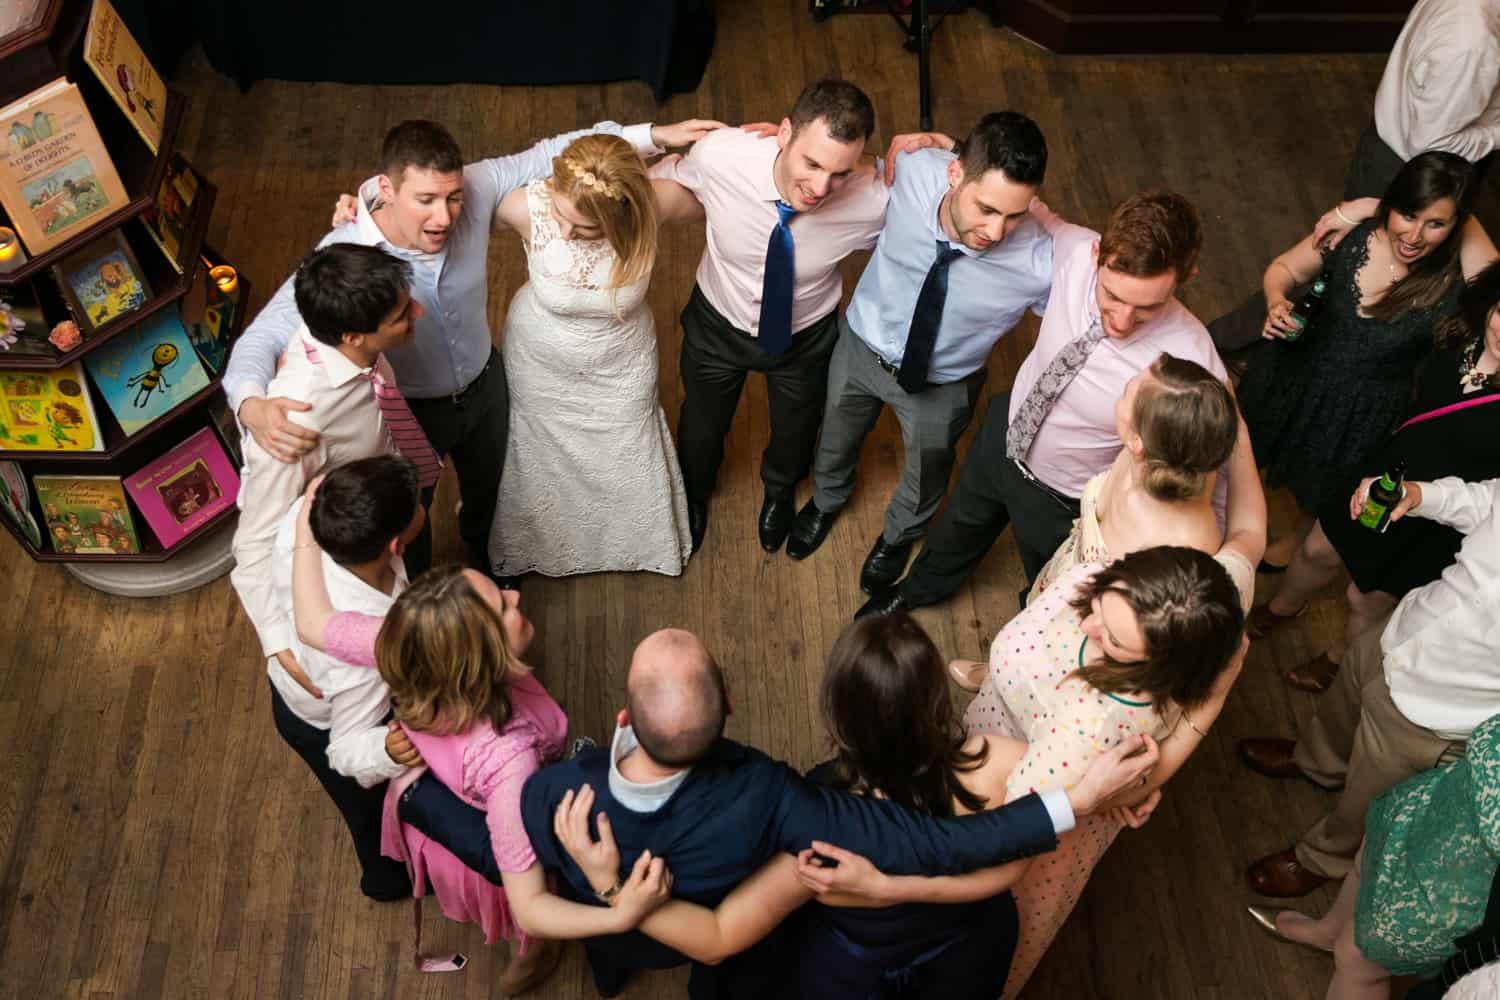 Guests hugging in circle at a Housing Works wedding